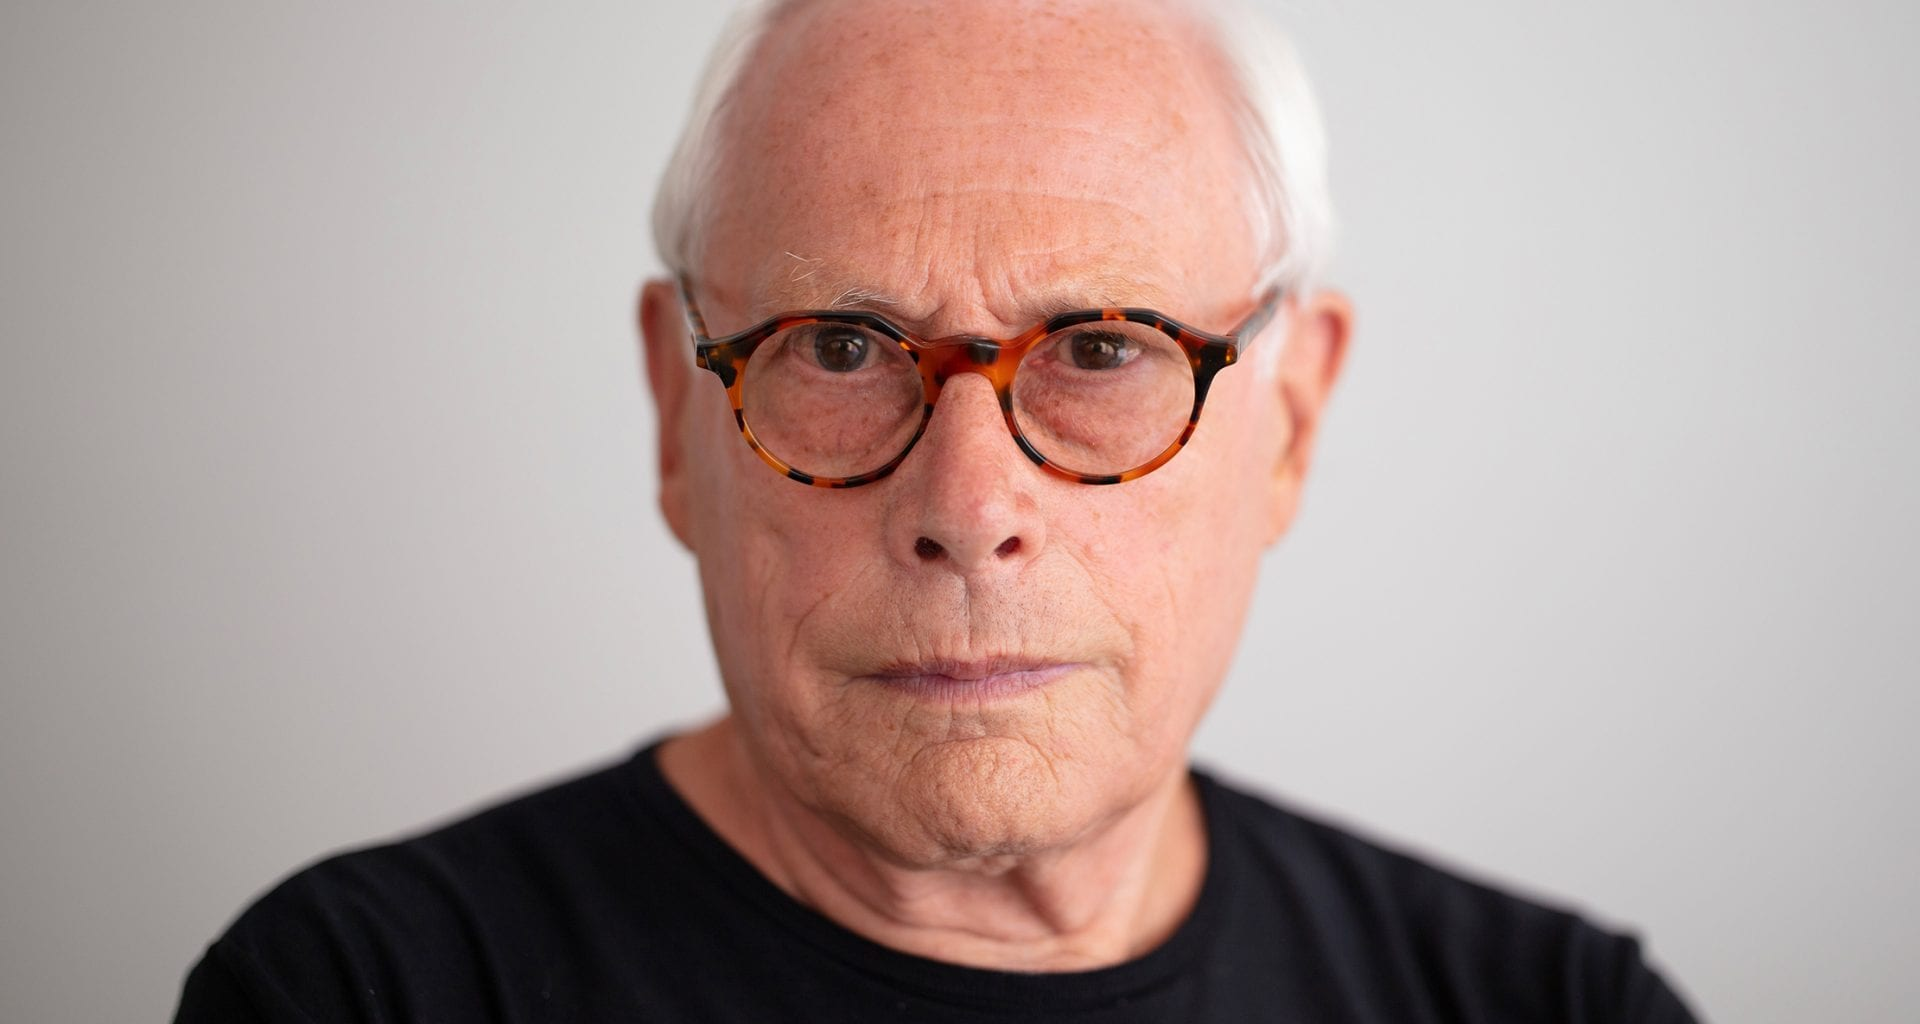 A portrait of Designer Dieter Rams.